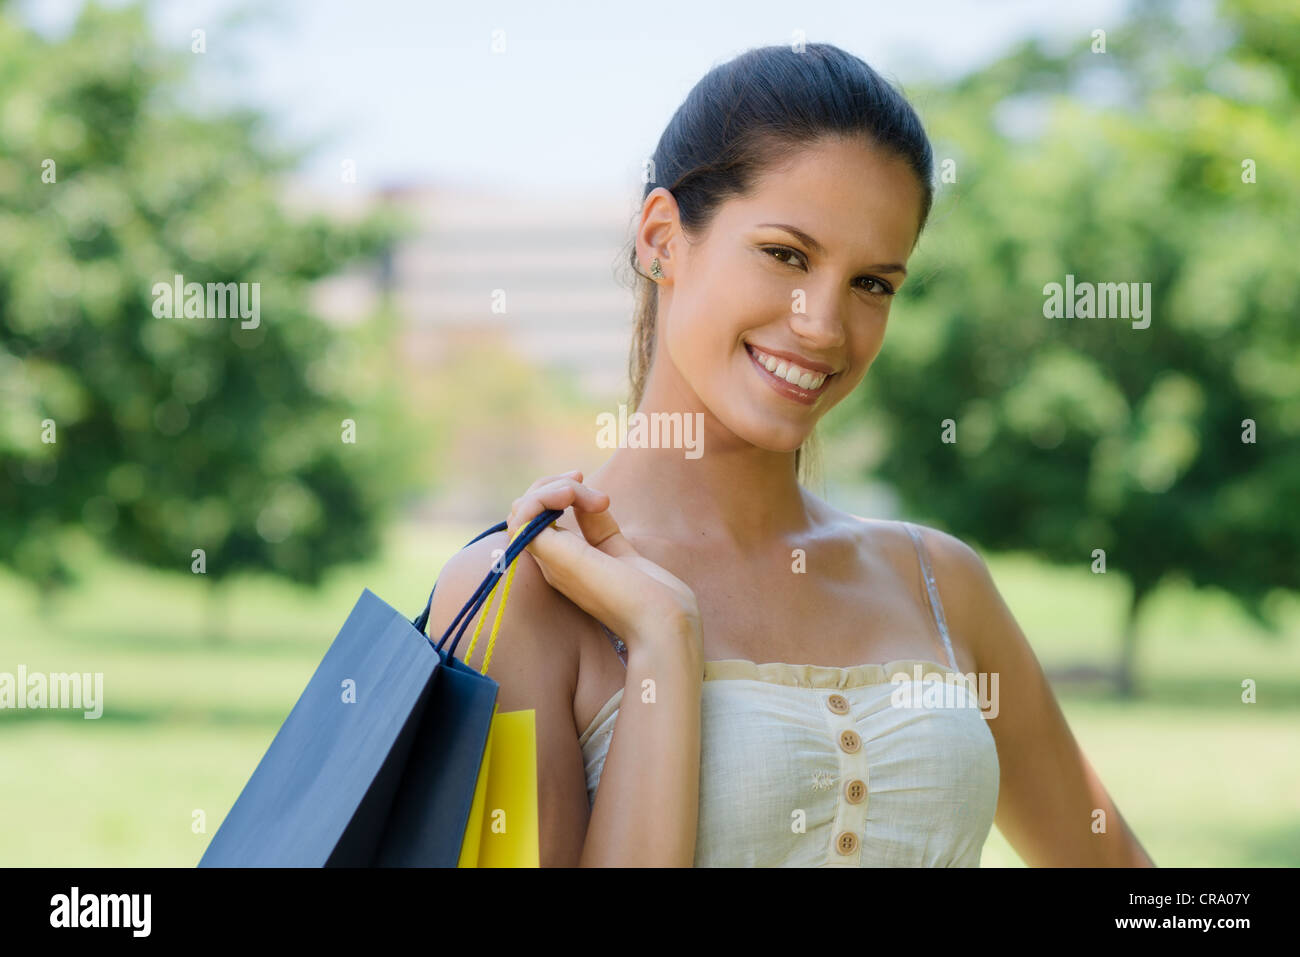 Consumerism, portrait of happy young woman smiling with shopping bags - Stock Image